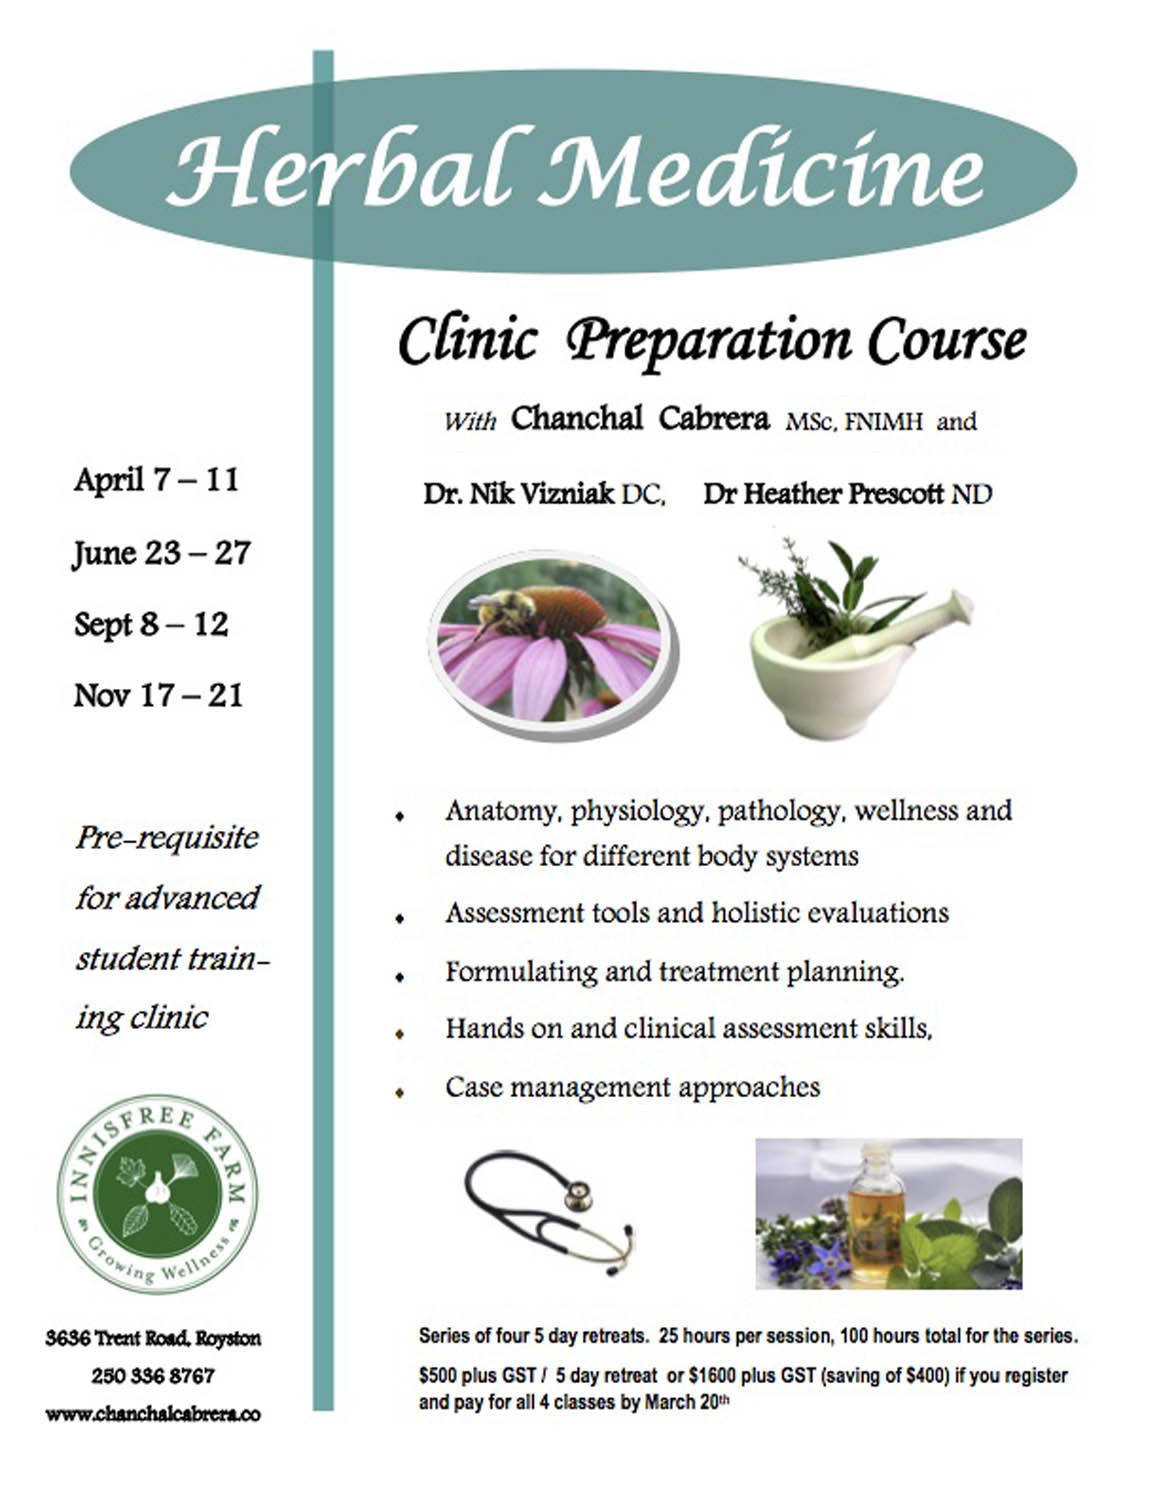 Center for holistic herbal therapy - Clinic Preparation Course For Herbal Medicine